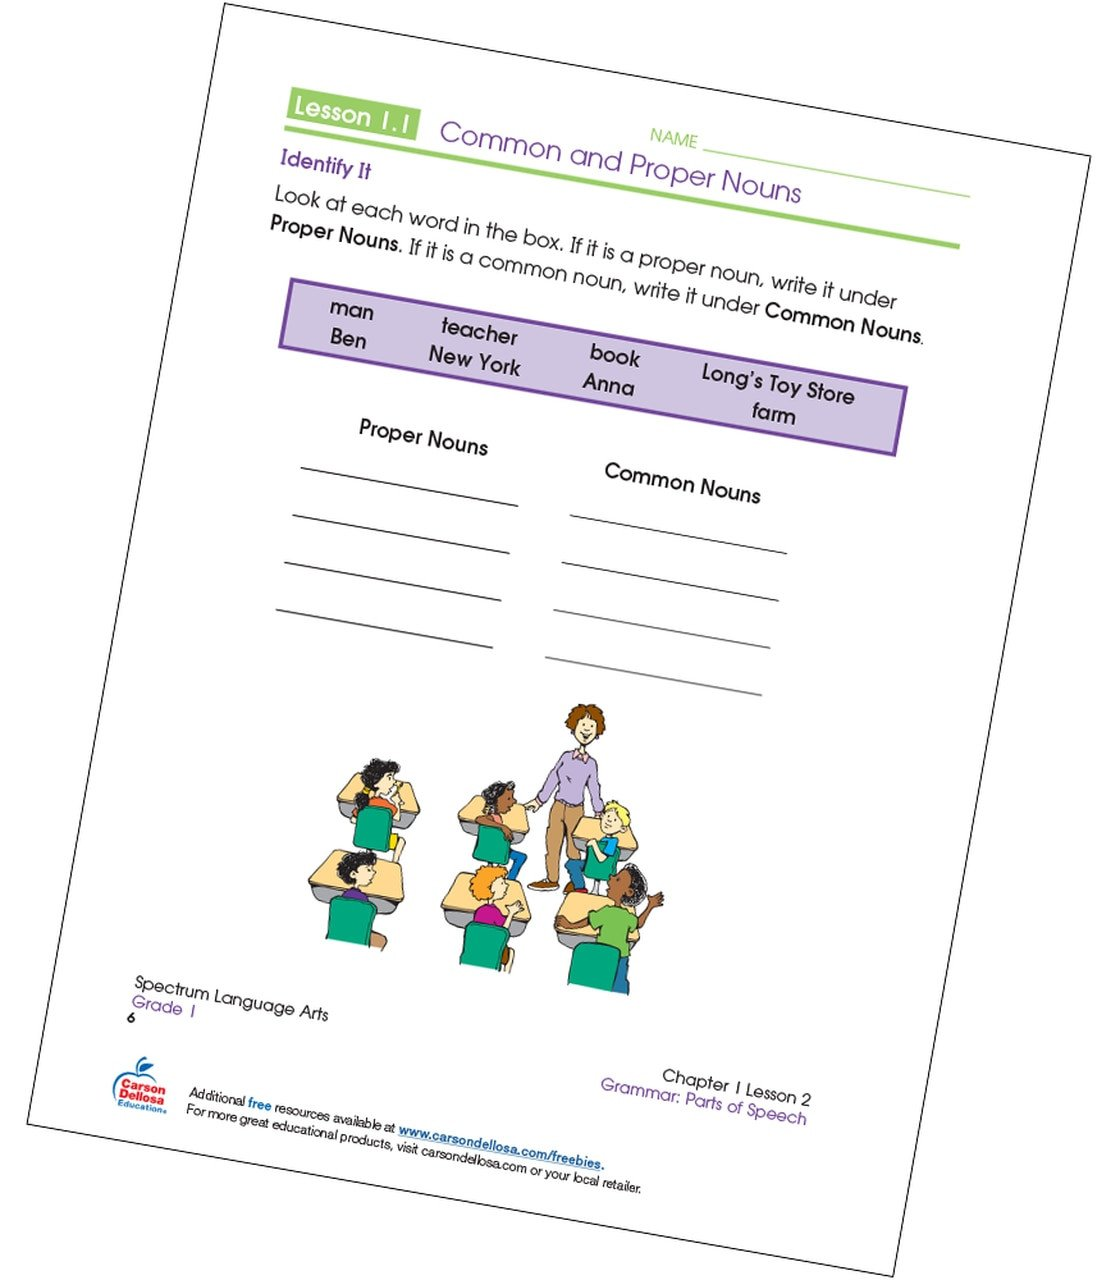 Free Proper Noun Worksheets Identifying Mon and Proper Nouns Grade 1 Free Printable